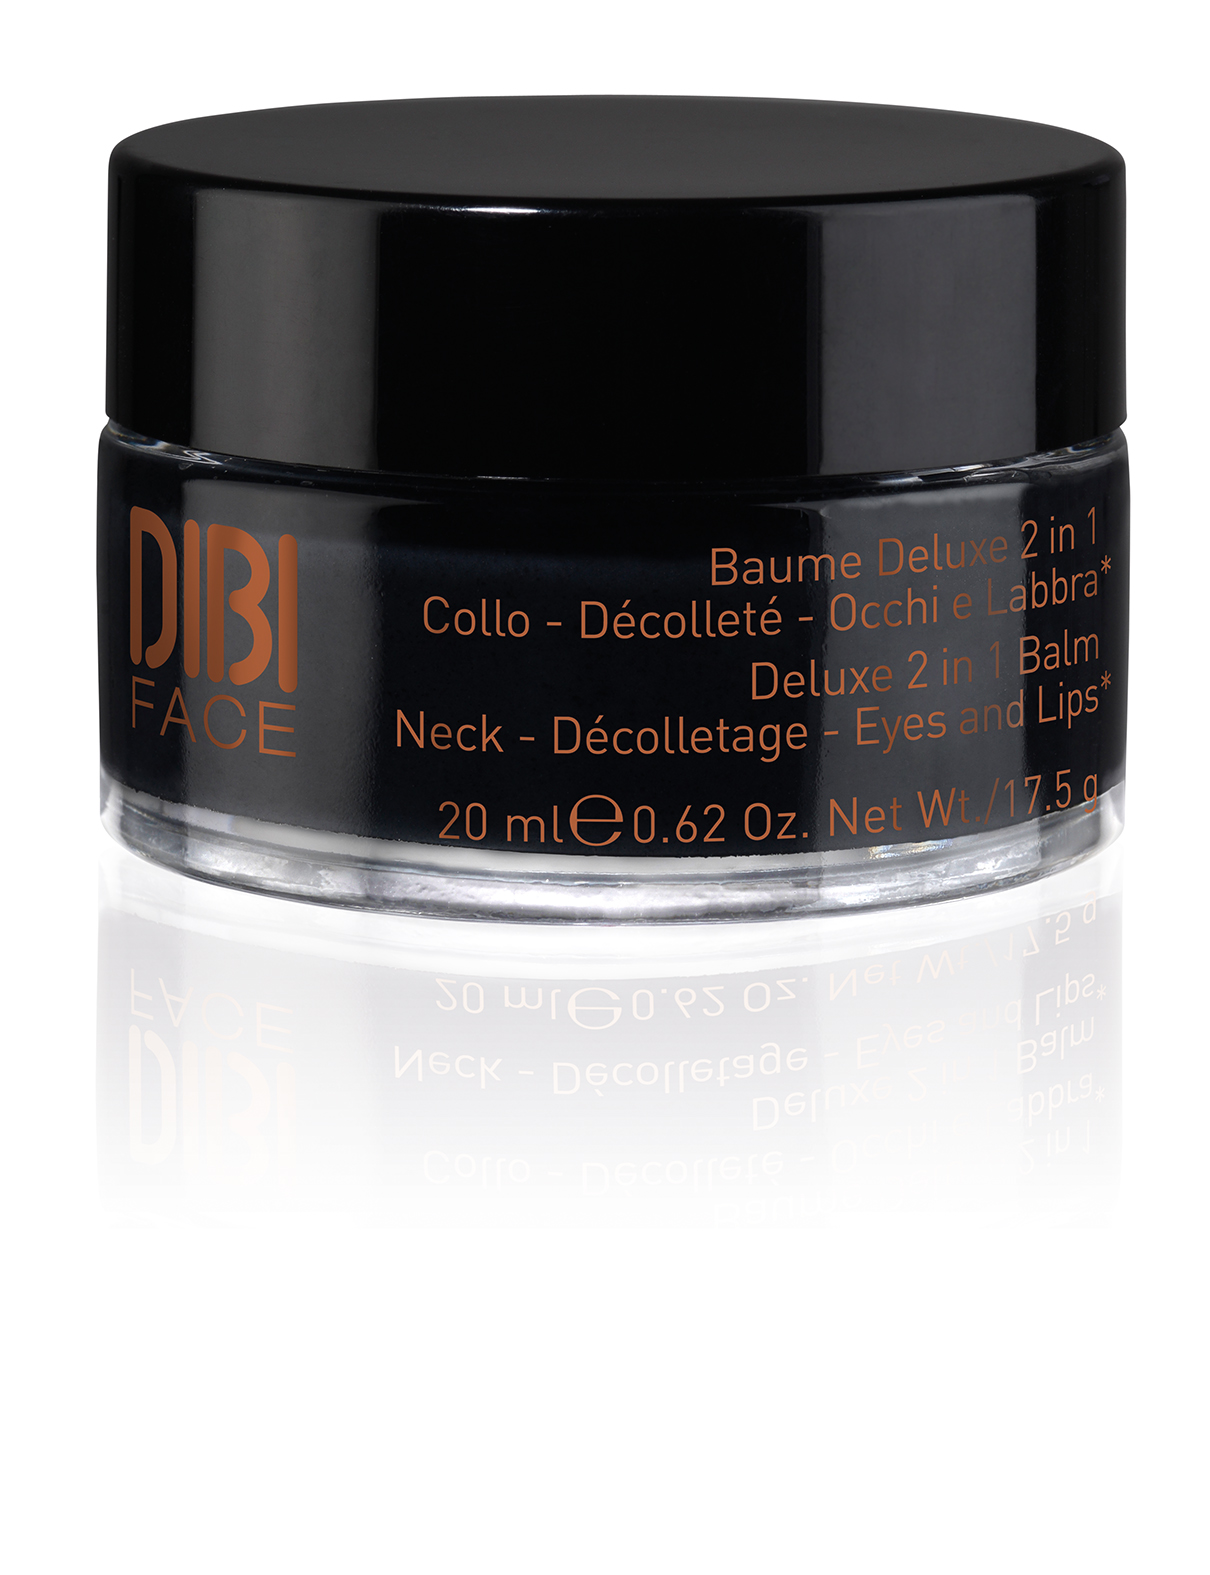 DIBI AGE METHOD DELUXE 2 IN 1 BALM-0